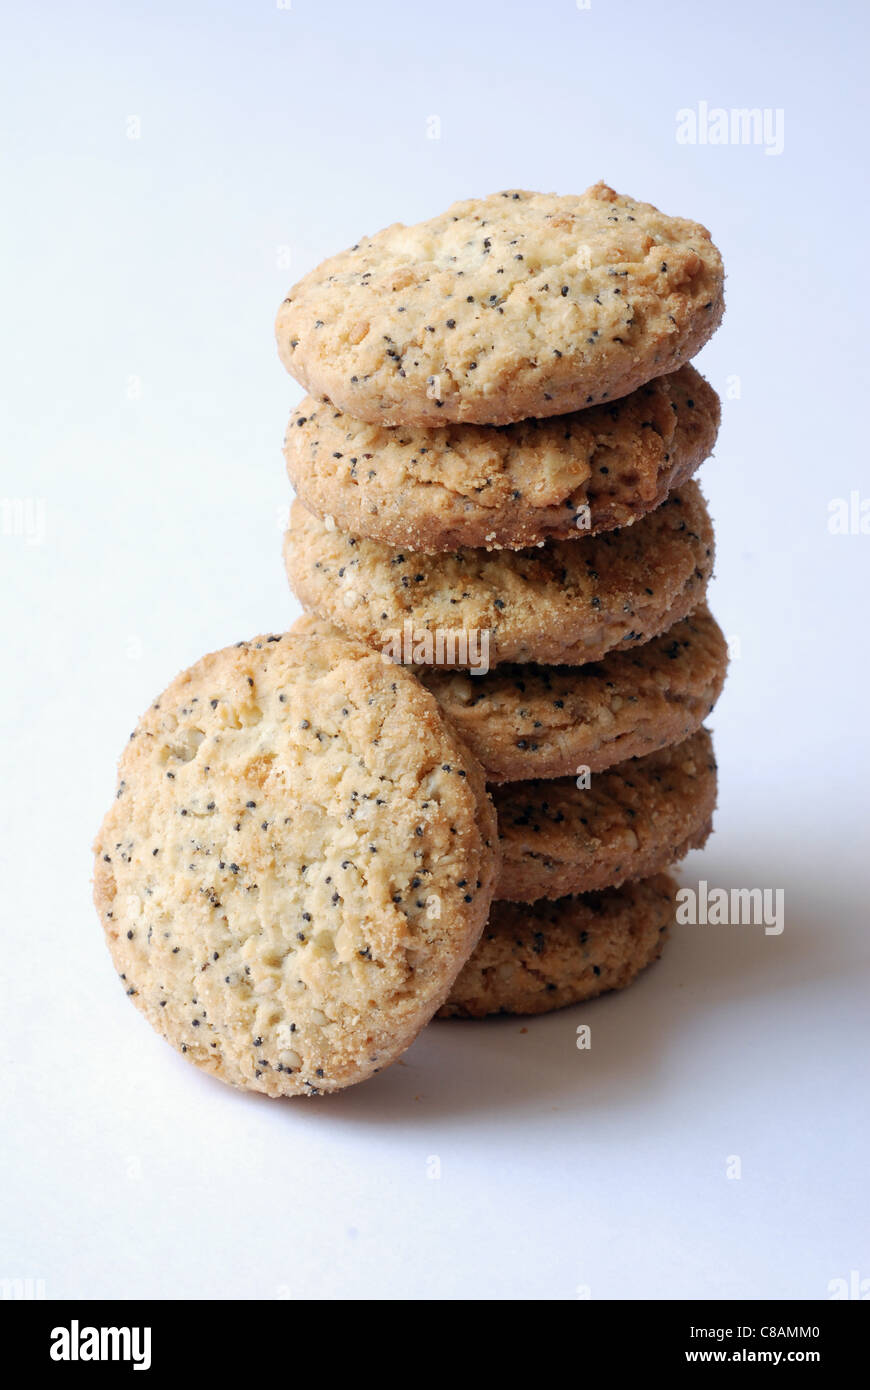 Poppyseed and sesame seed shortbread biscuits - Stock Image